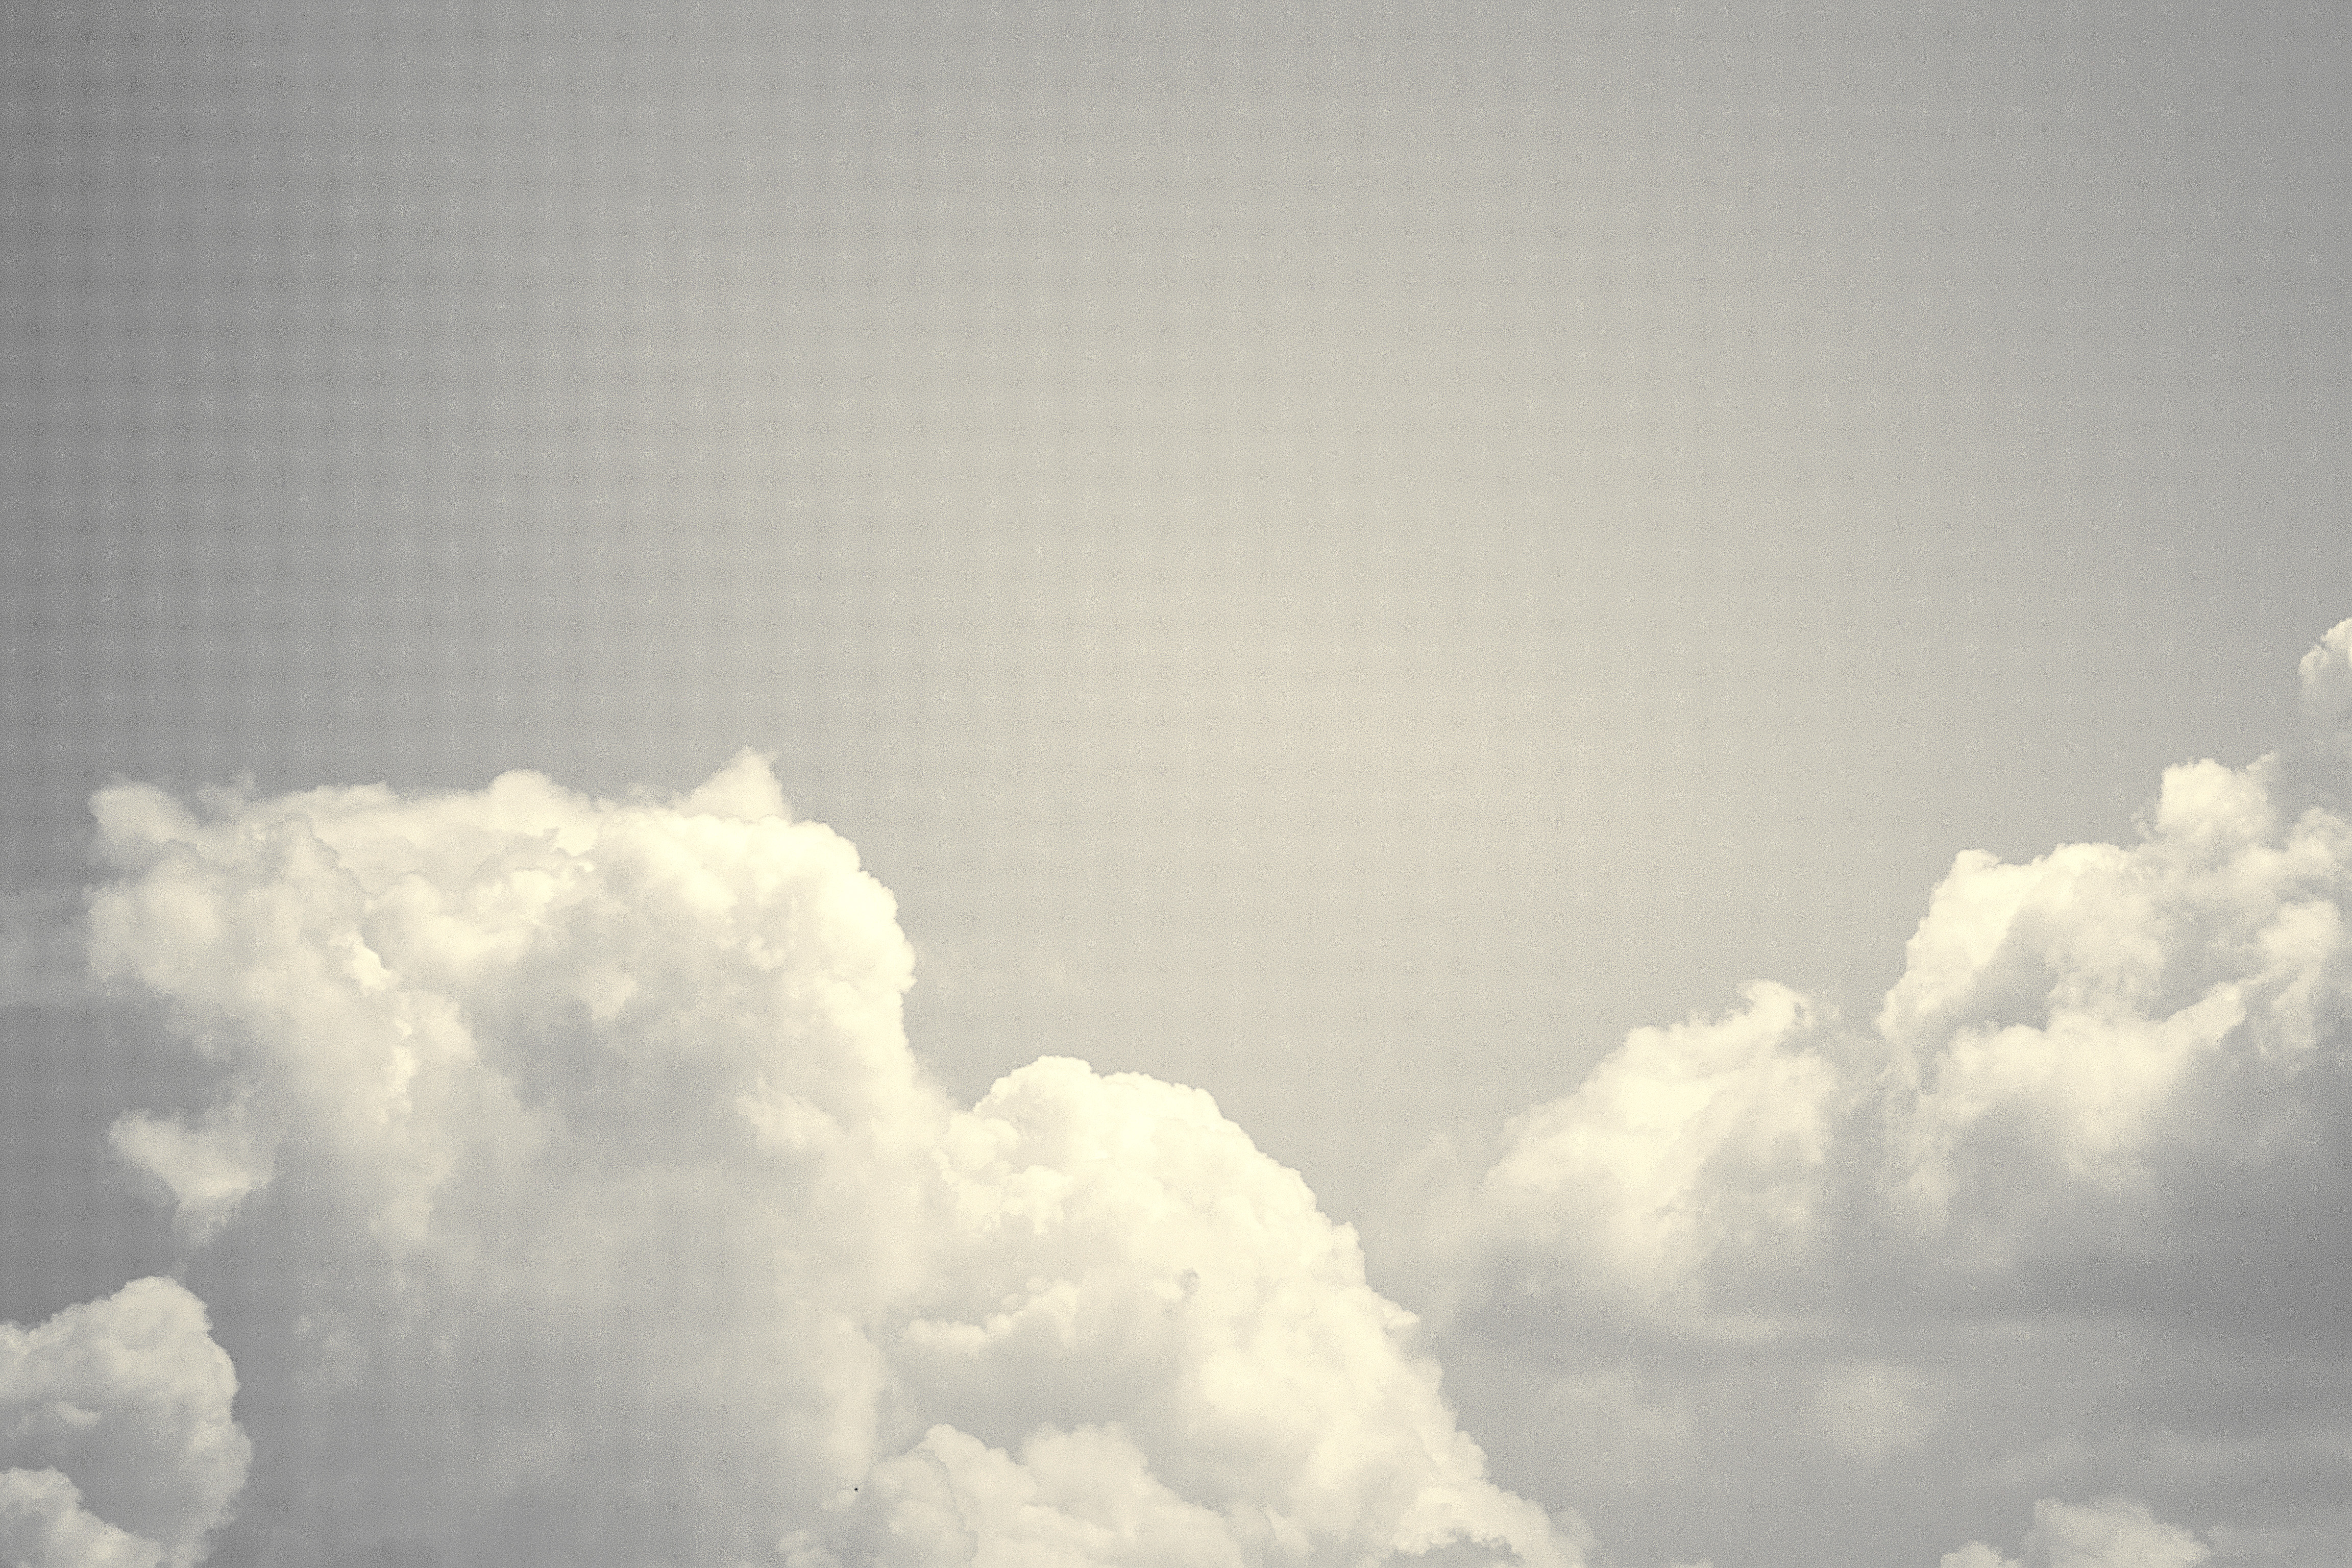 Aire Light, Light air, clouds, sky, black and white, gray, cotton